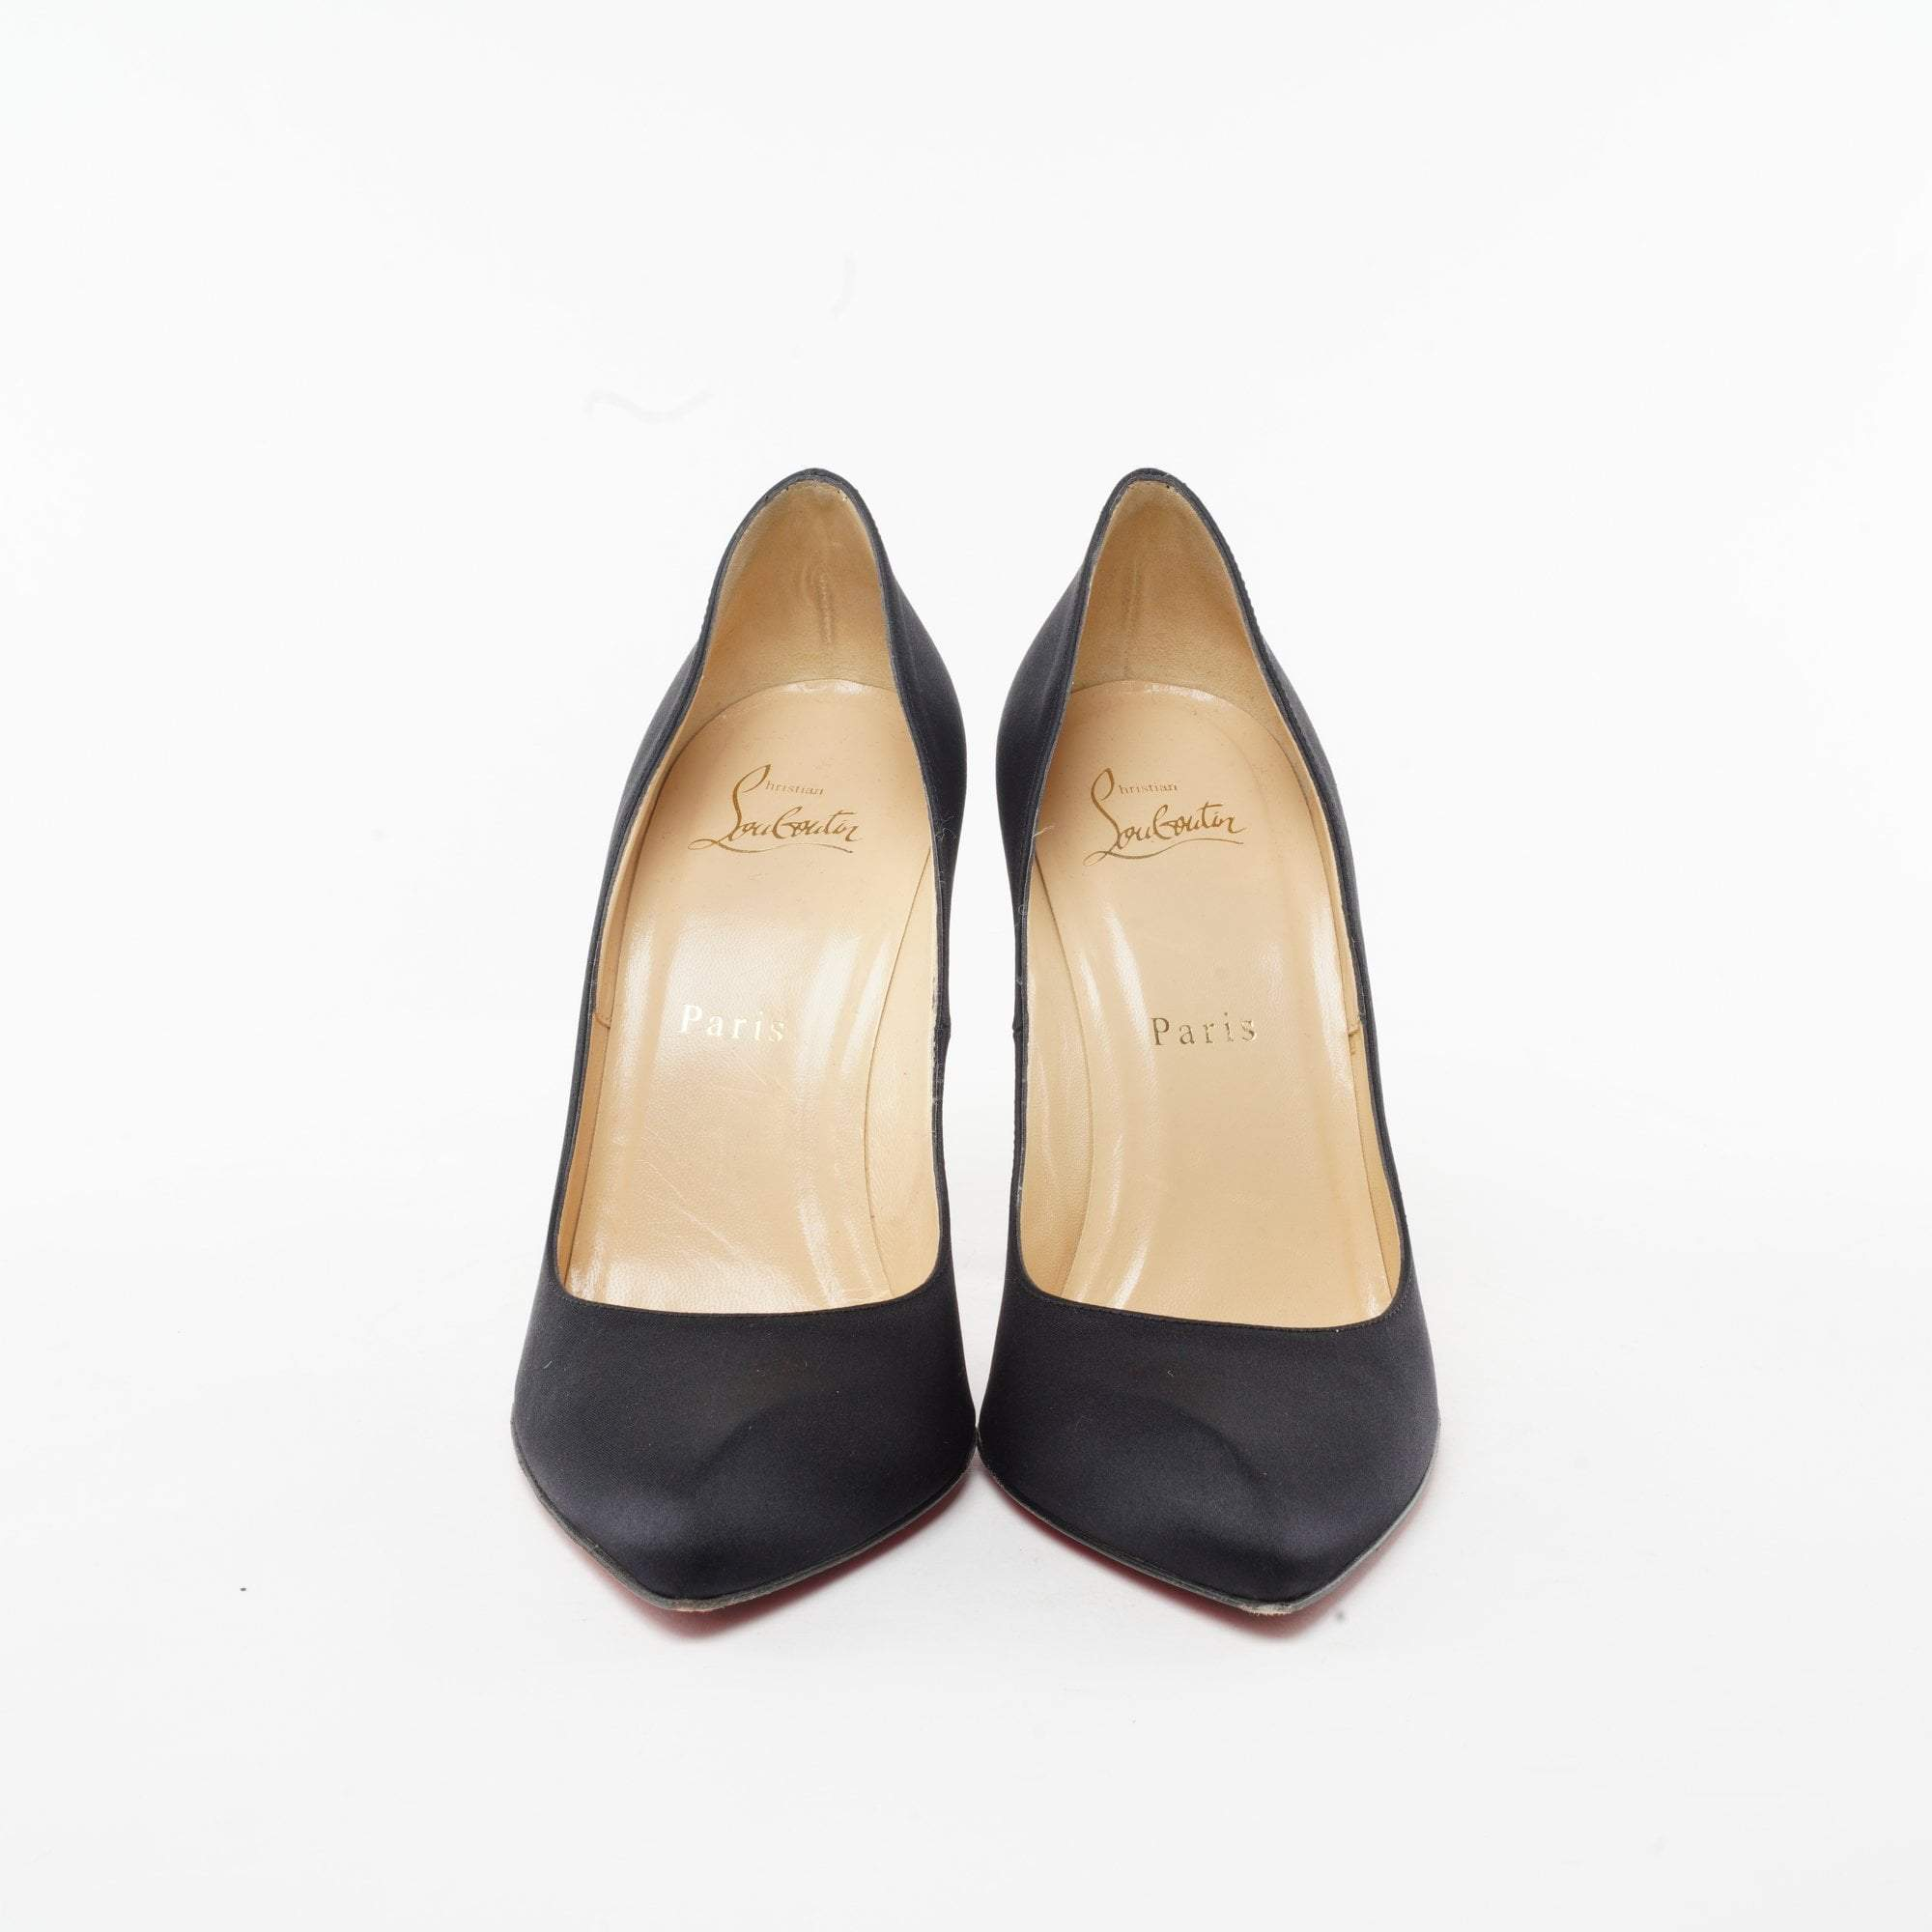 Christian Louboutin Classic Black Satin Pointed Toe Pumps